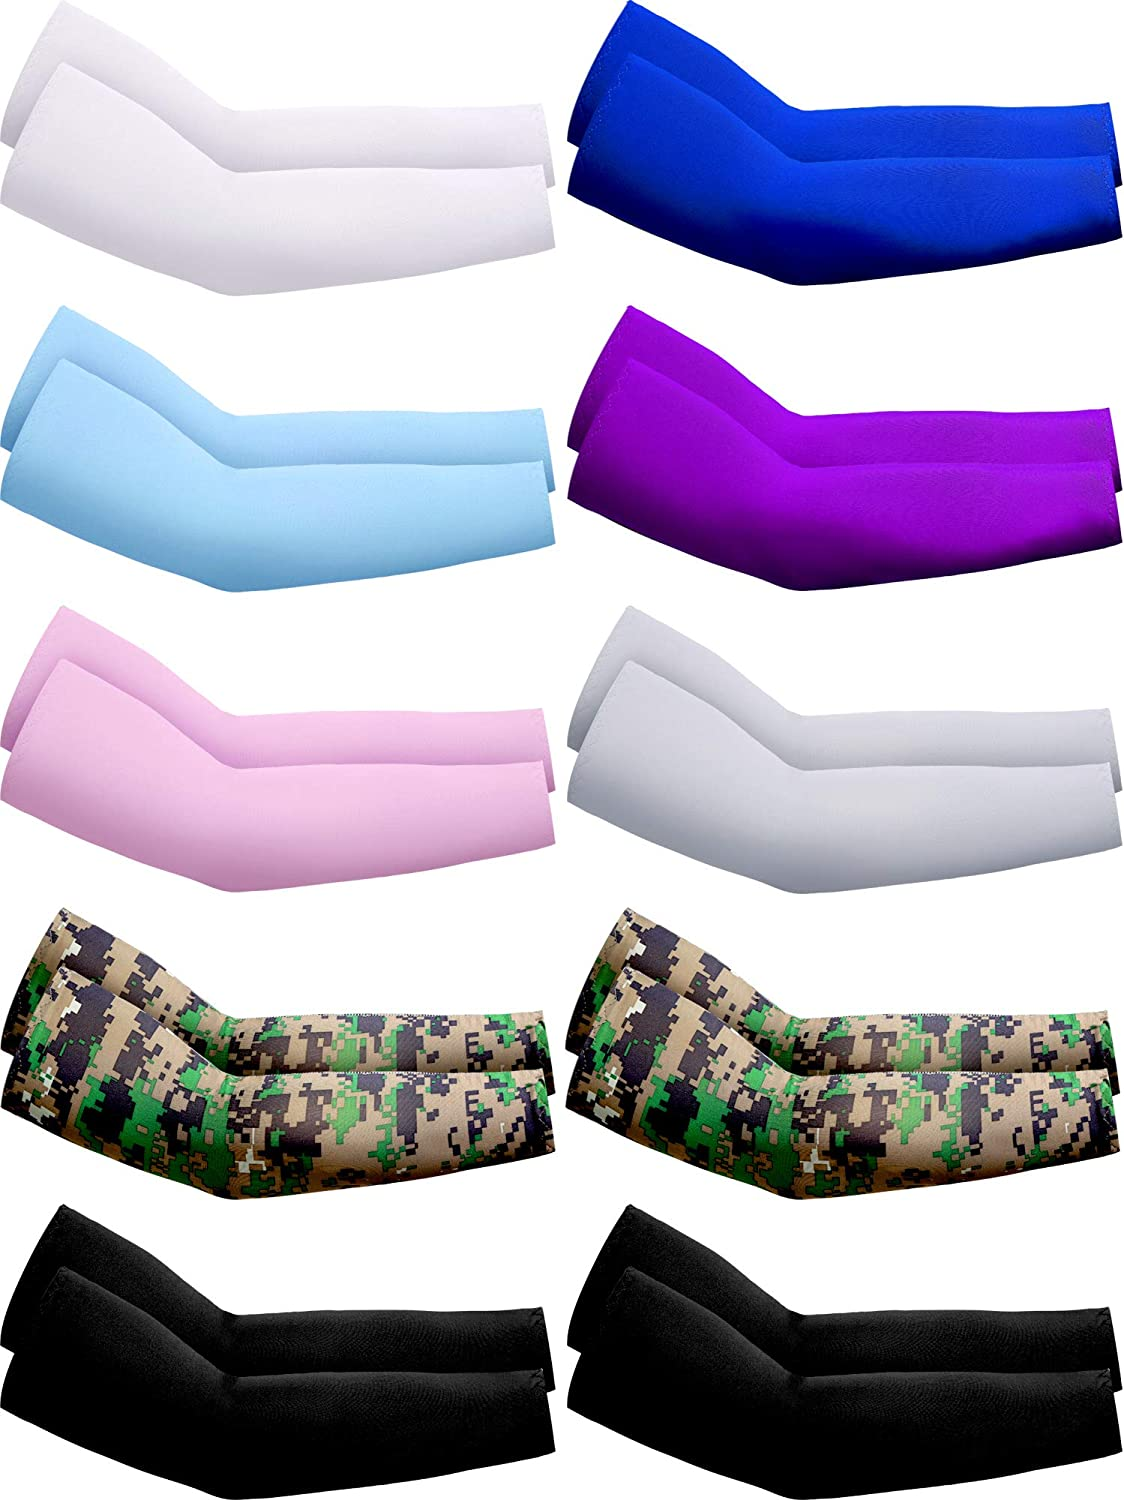 10 Pairs UV Protection Sleeves Sun Protection Cooling Arm Sleeves Anti-Slip Ice Silk Arm Covers for Men and Women (White, Grey, Black, Blue, Purple, Pink, Camouflage)